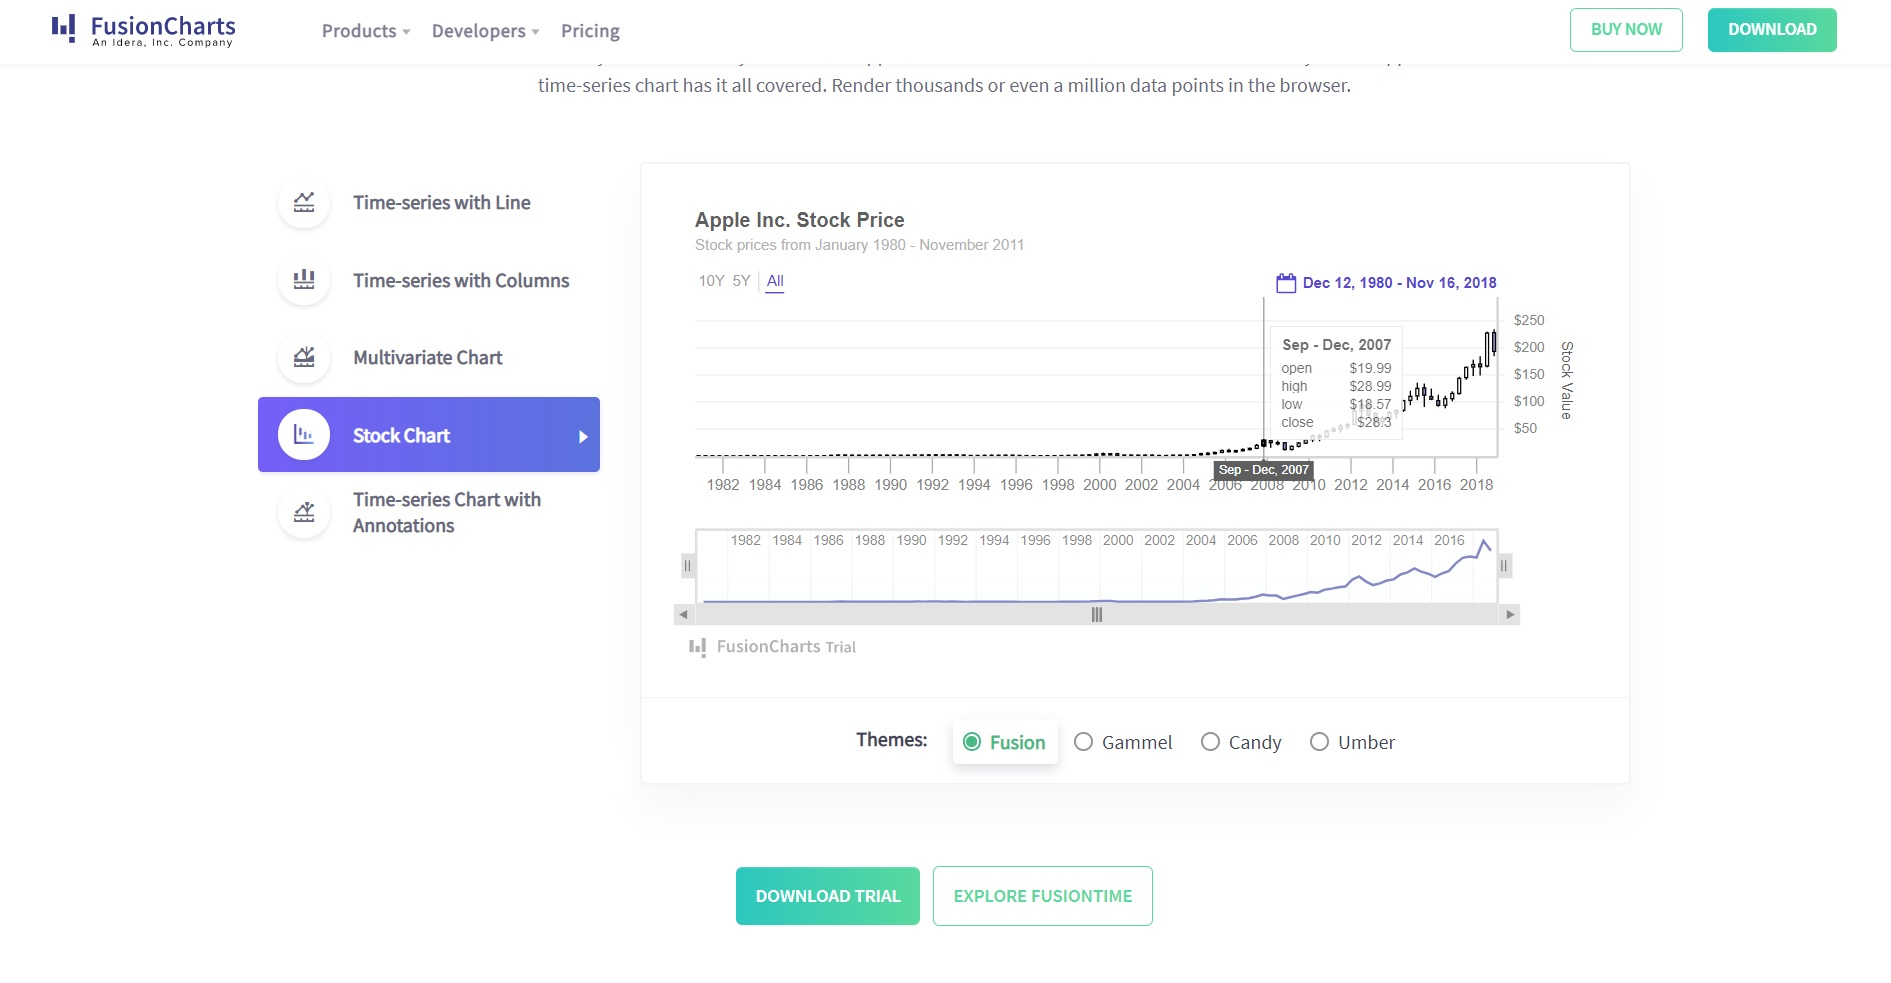 Style your FusionCharts dashboard to match your site